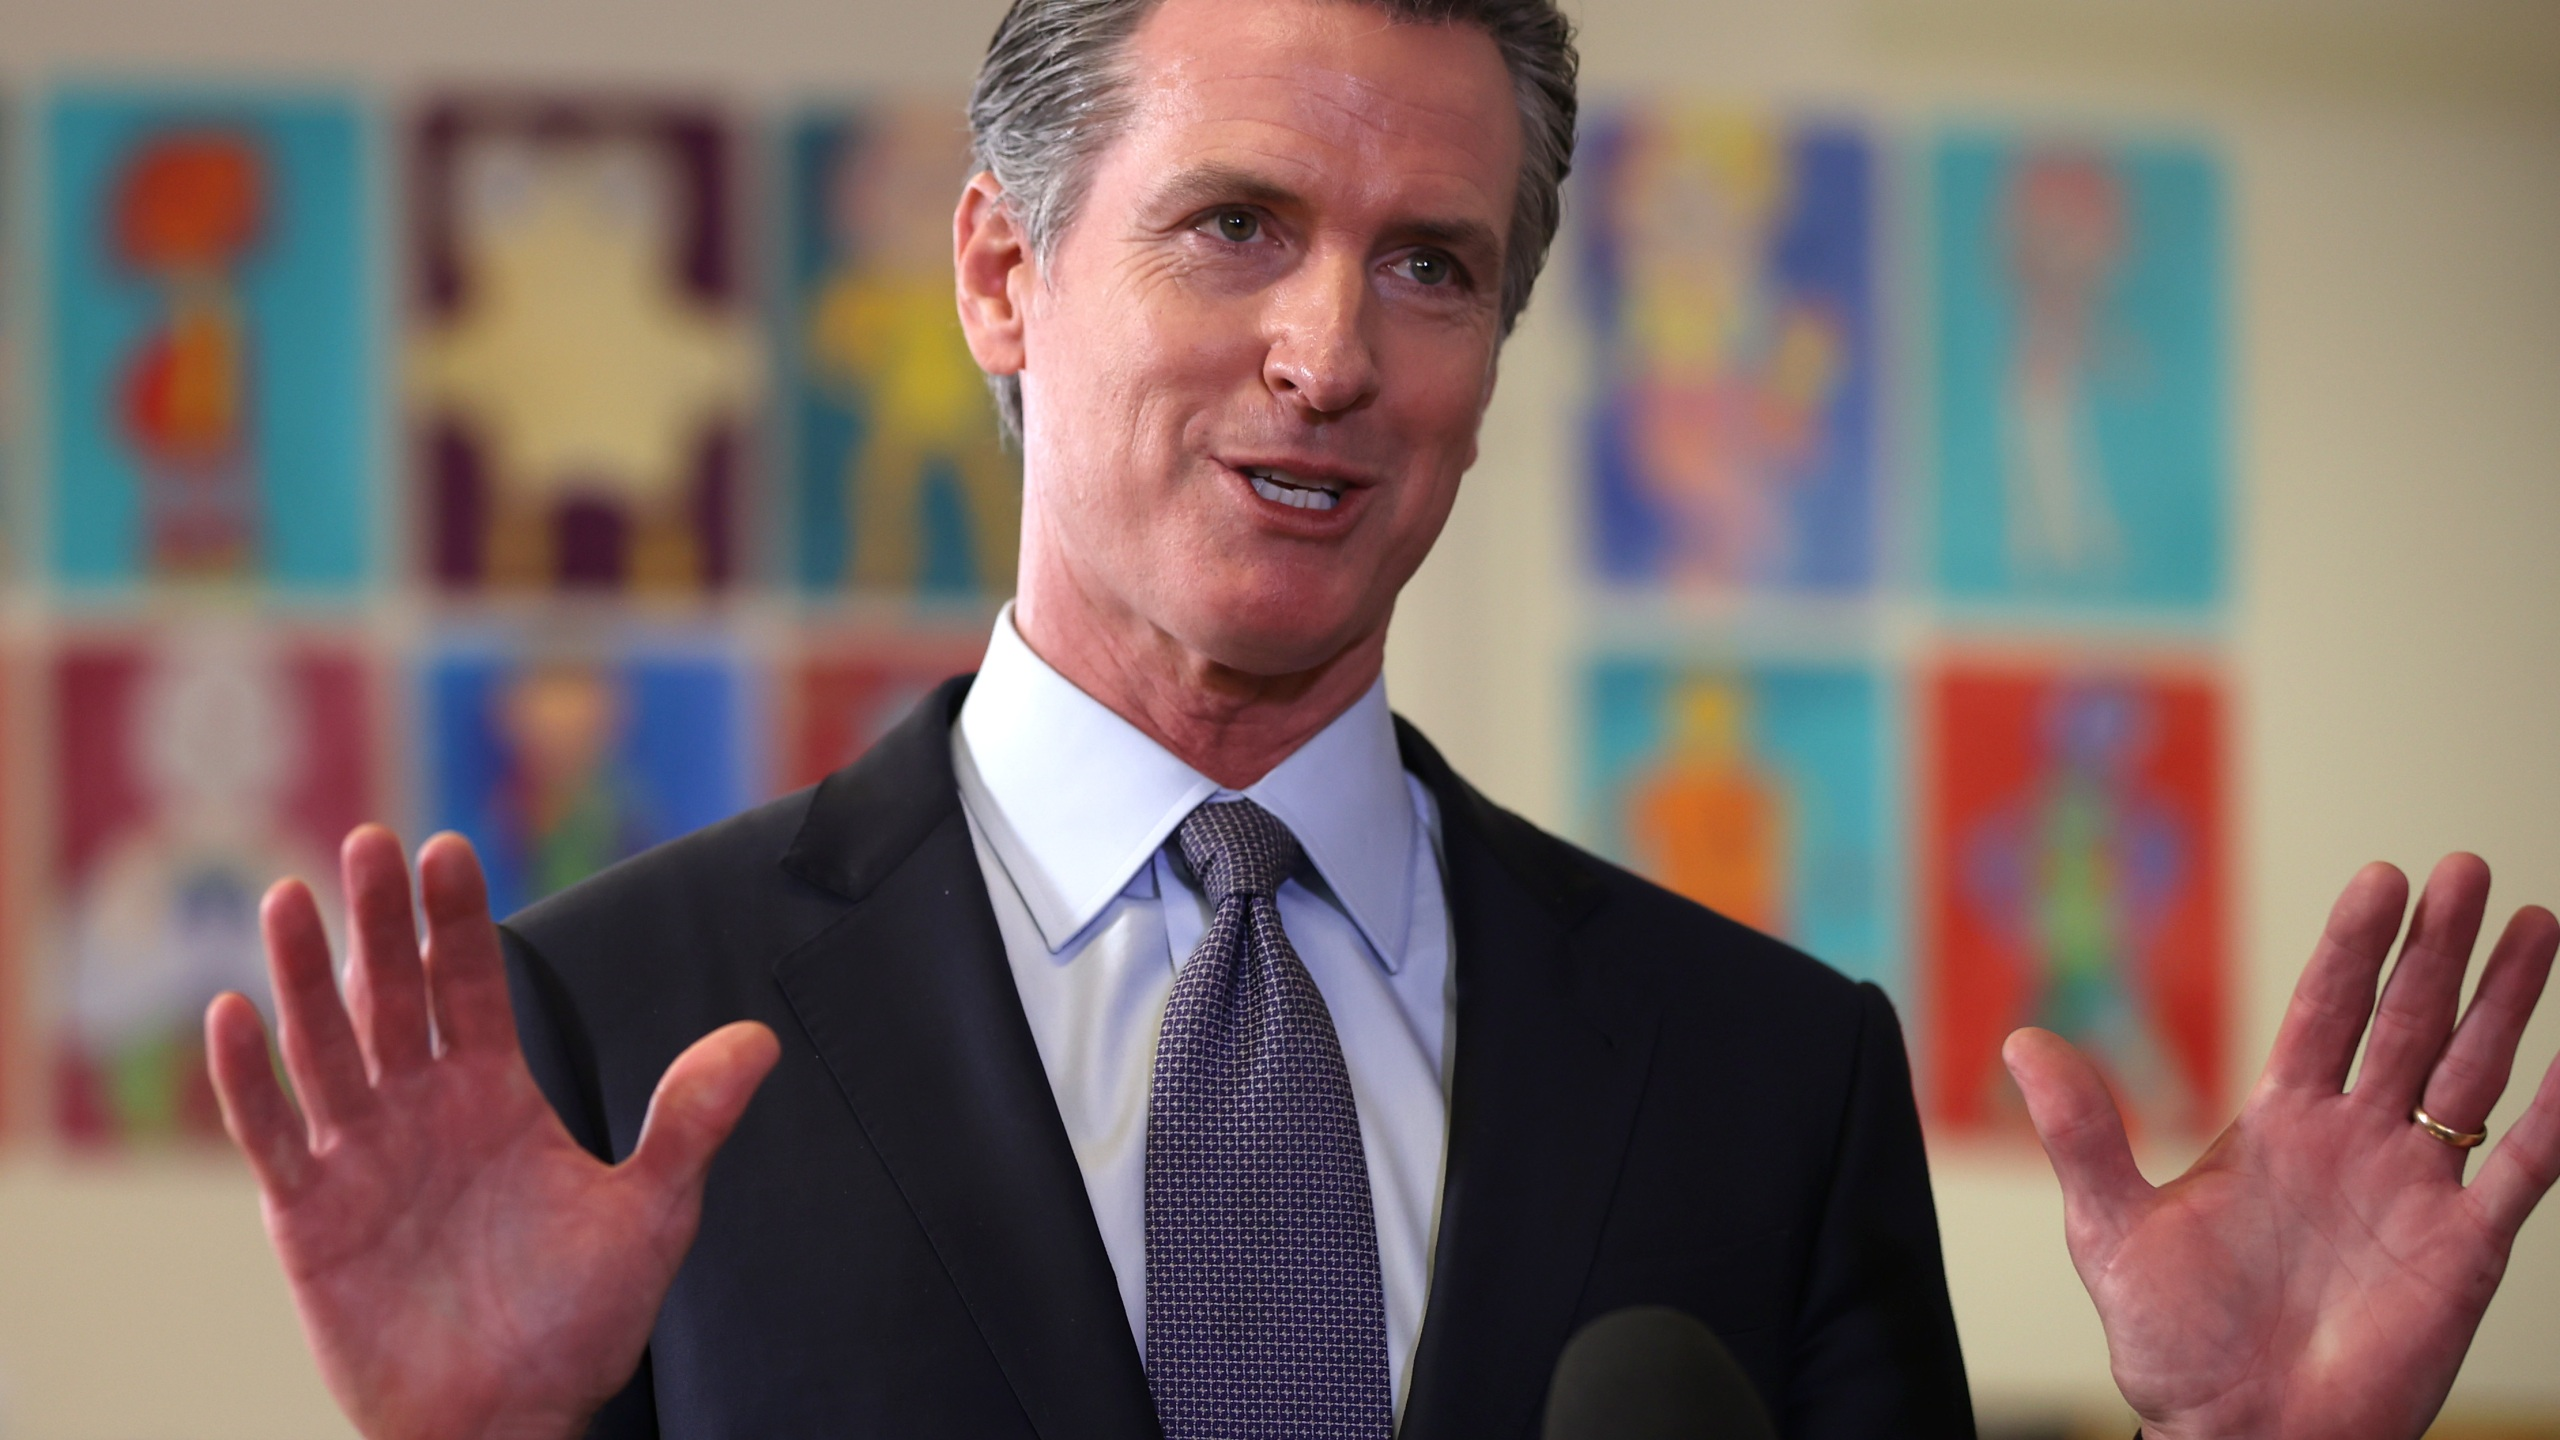 Gov. Gavin Newsom speaks during a news conference after meeting with students at James Denman Middle School in San Francisco on Oct. 1, 2021. (Justin Sullivan / Getty Images)